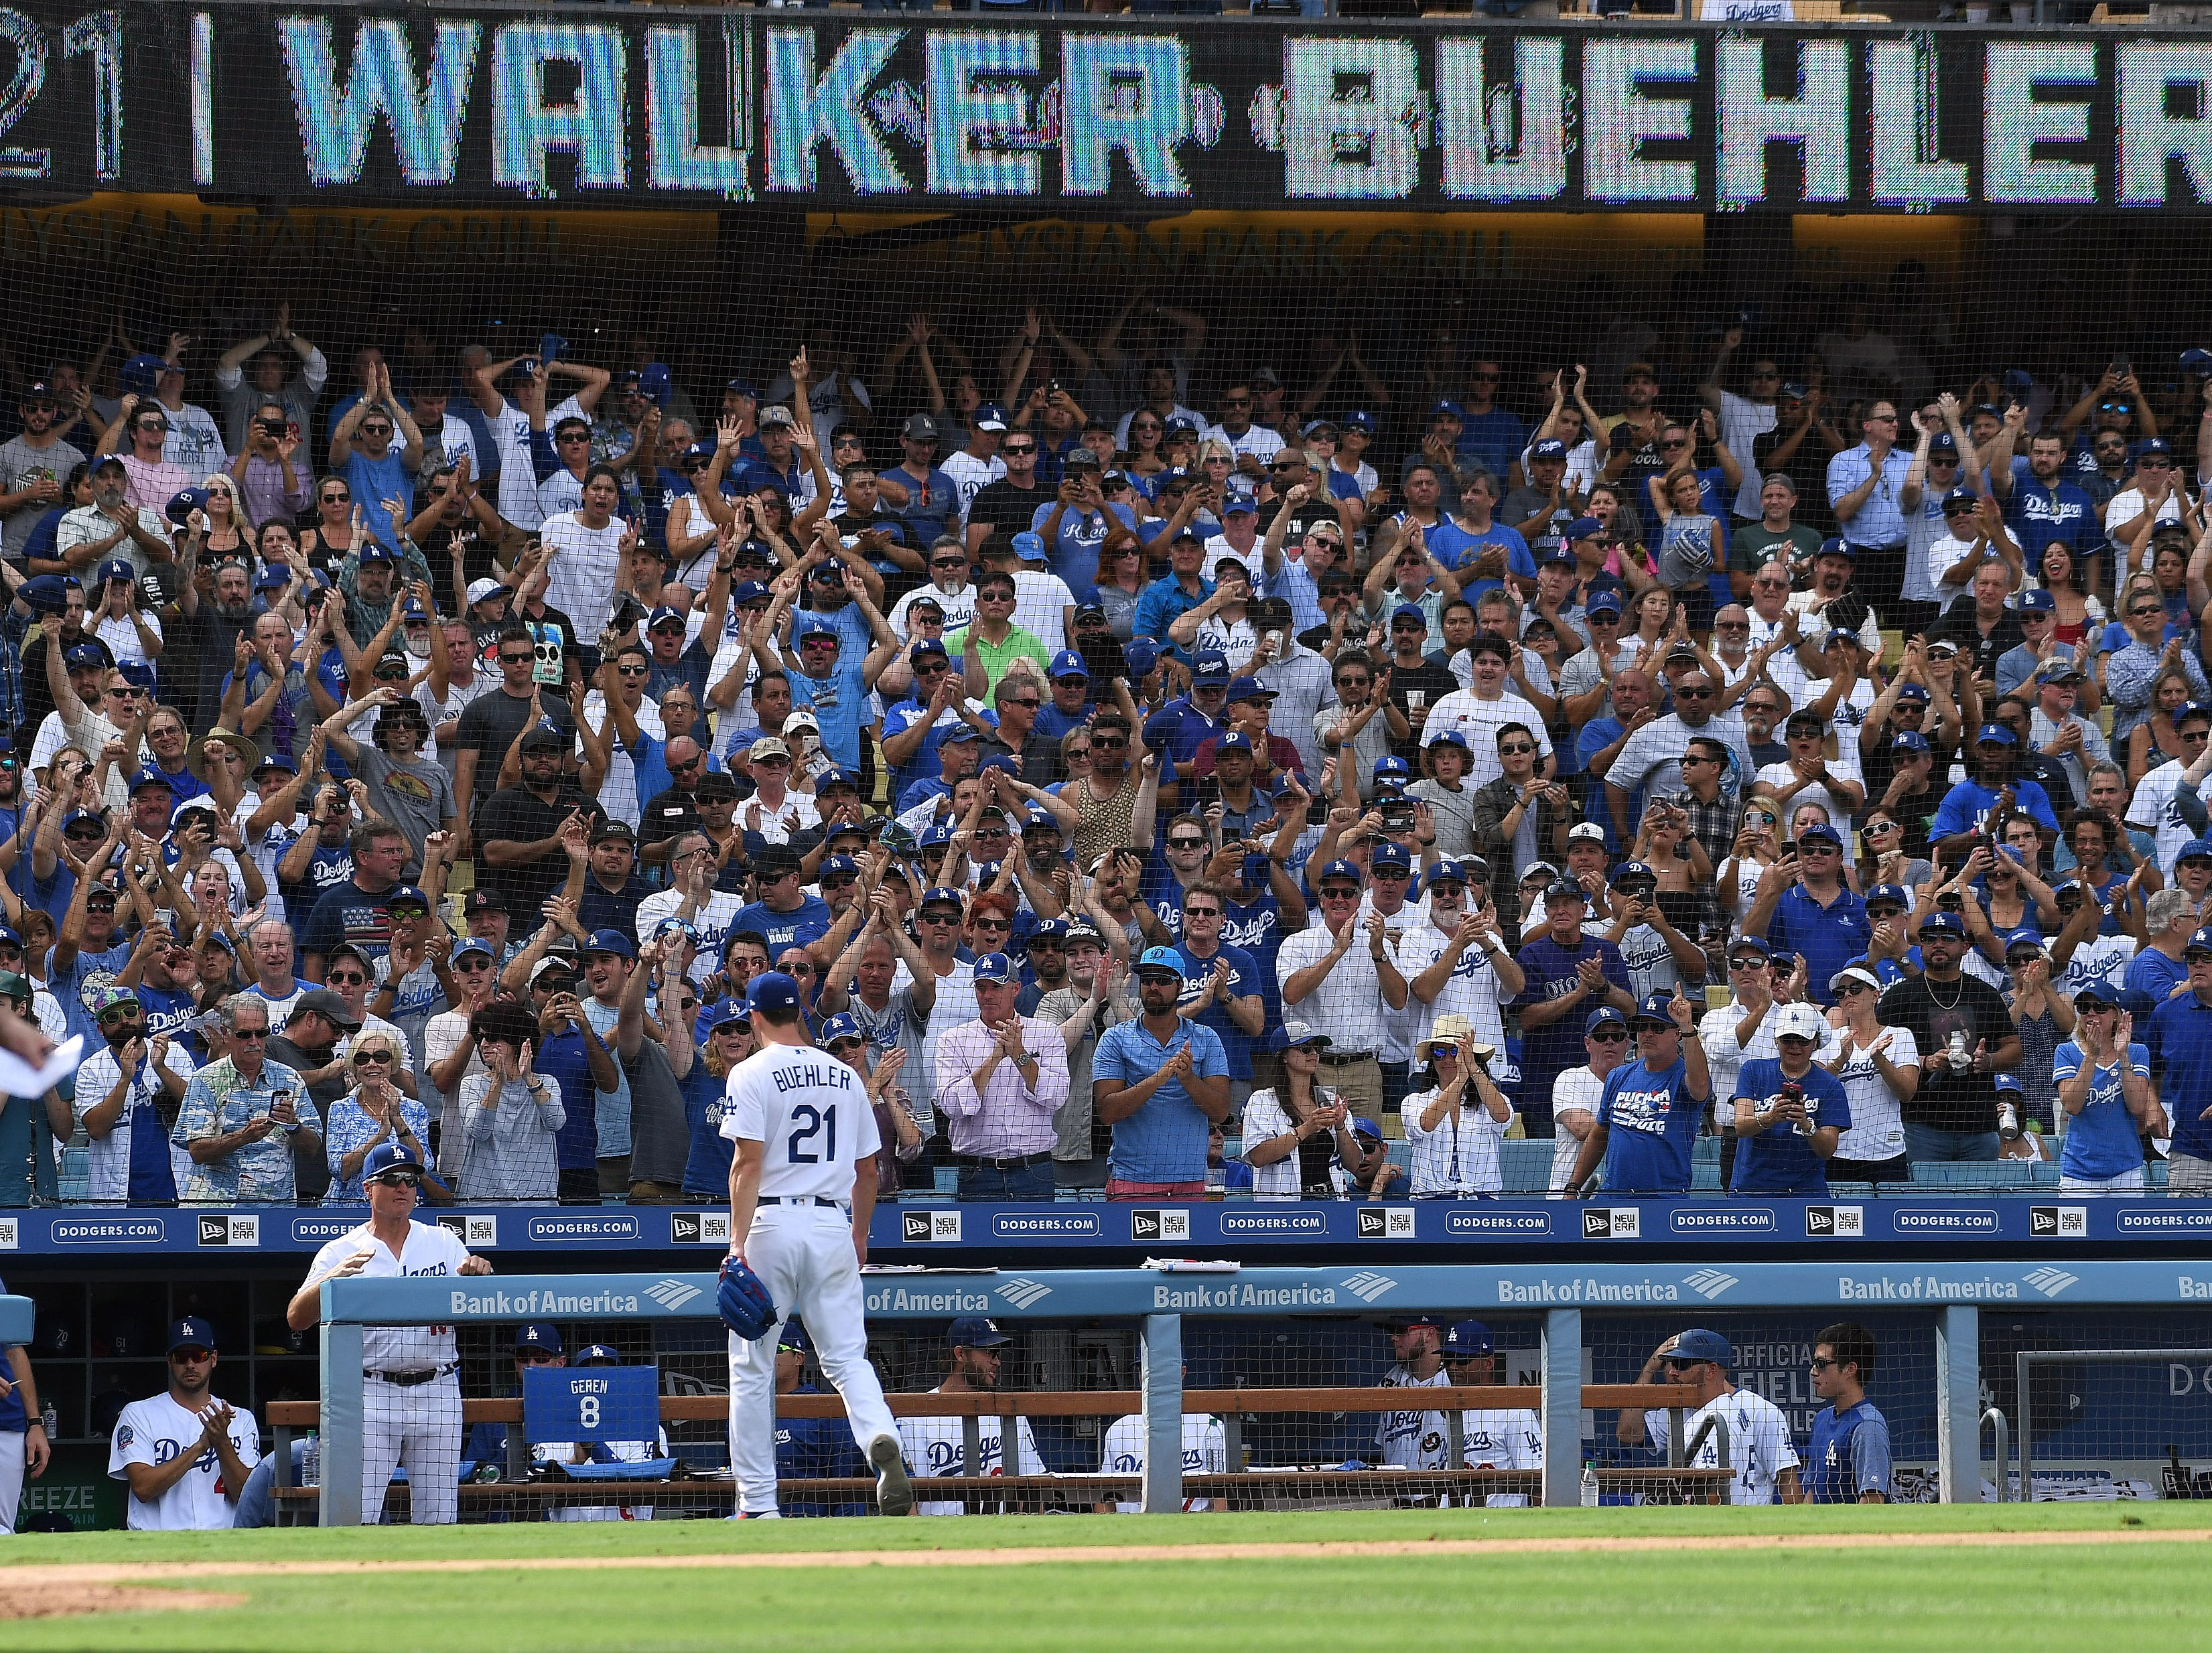 Fans applaud Dodgers pitcher Walker Buehler as he walks off the mound in the seventh inning.